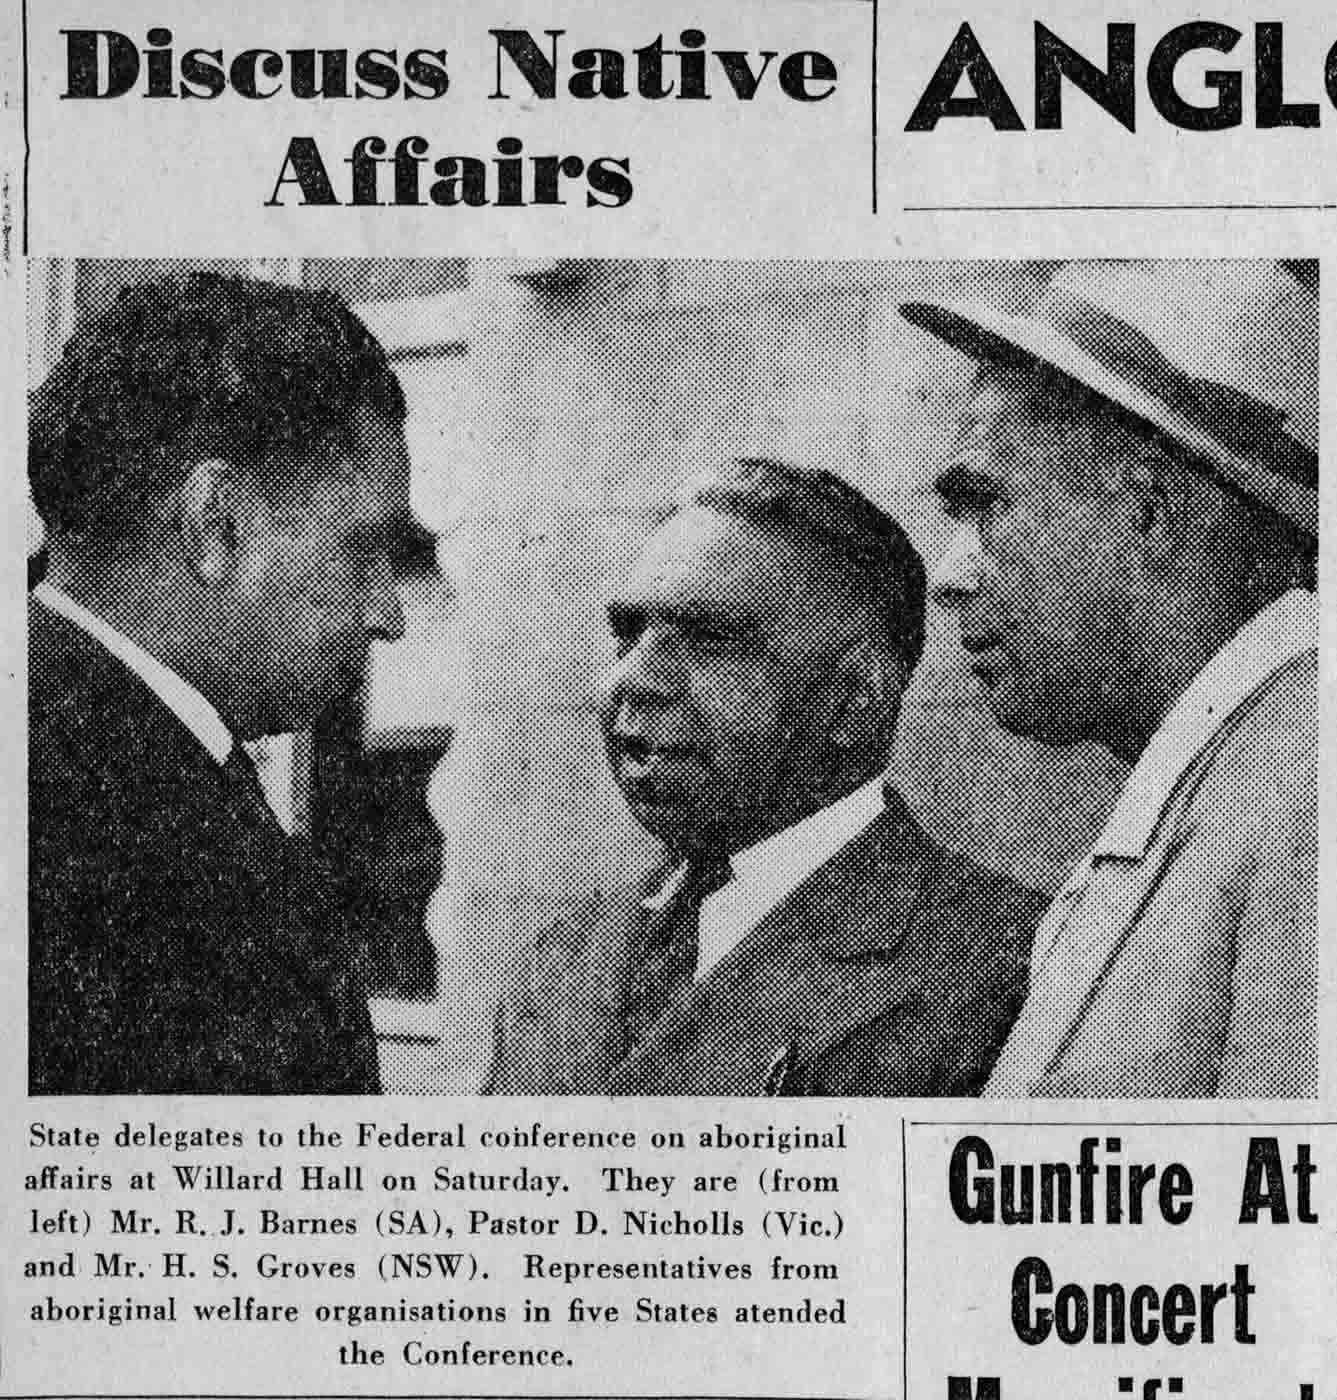 Newspaper clipping of state delegates having a discussion. The title of the report is: 'Discuss Native Affairs'. - click to view larger image